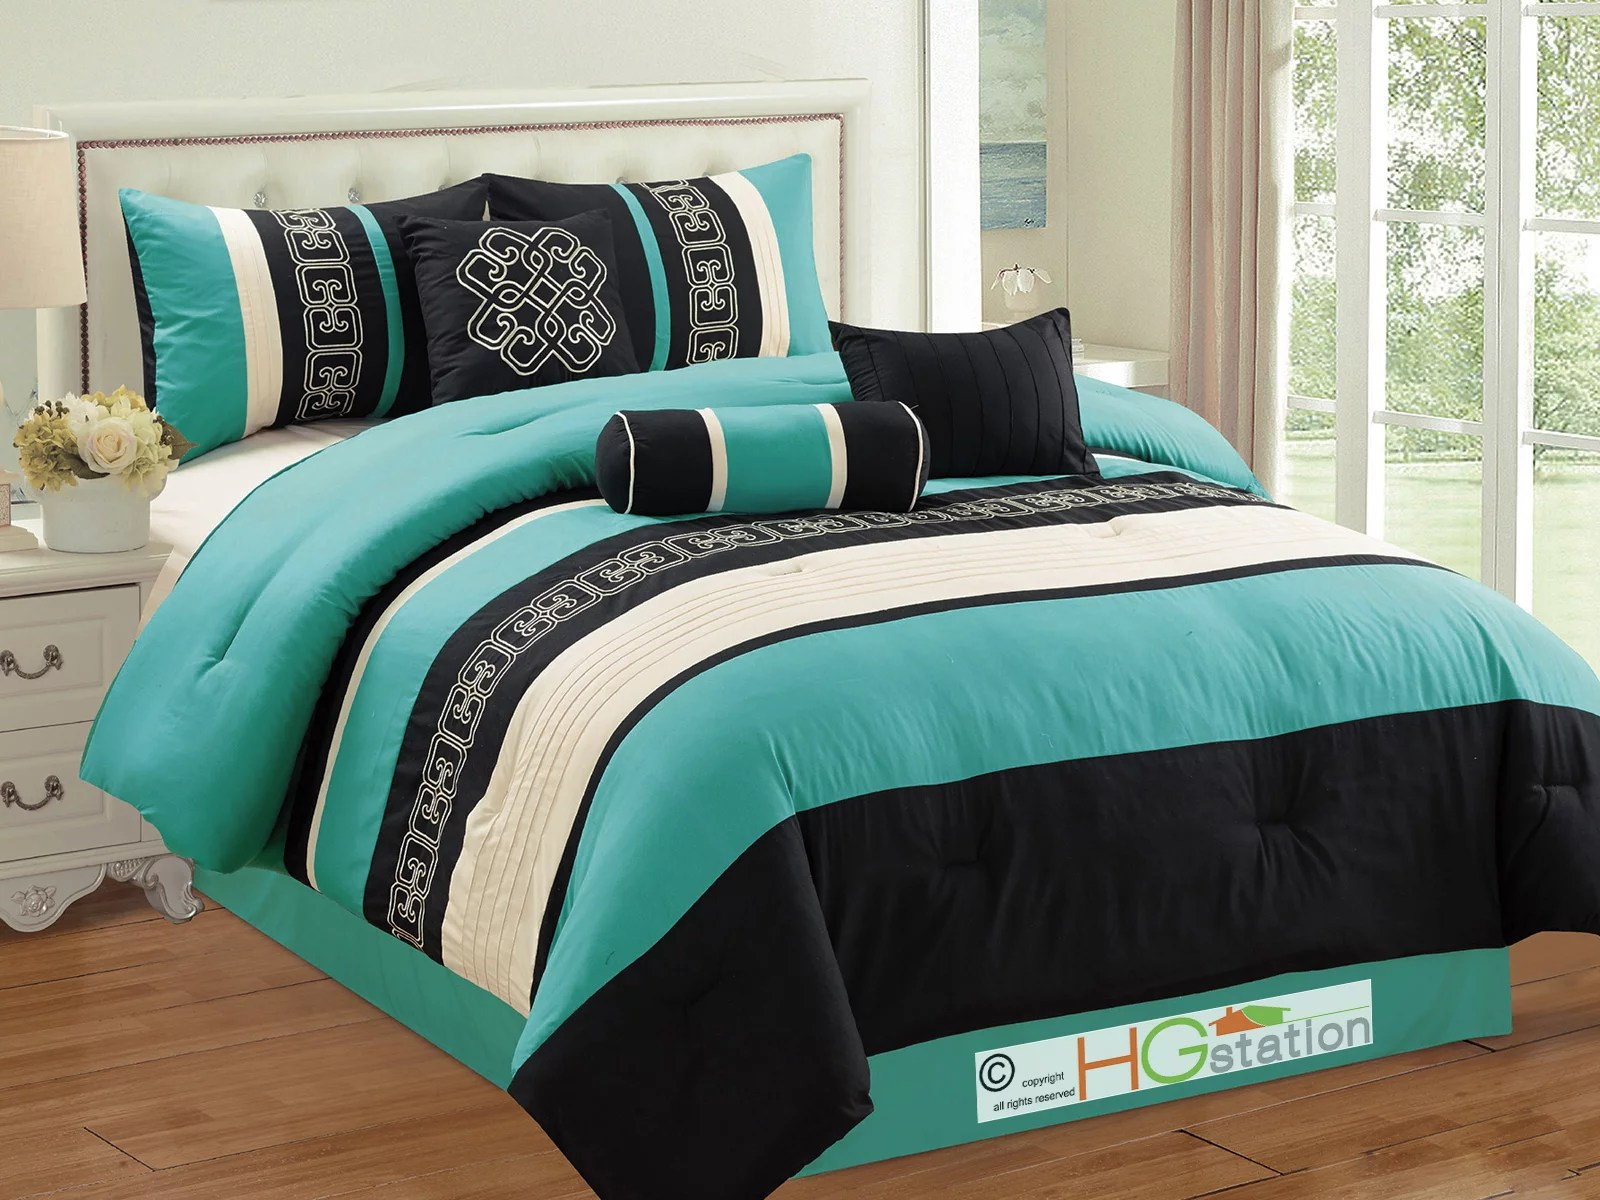 7 pc greek key meander motif embroidery pleated comforter set turquoise blue black ivory queen walmart com